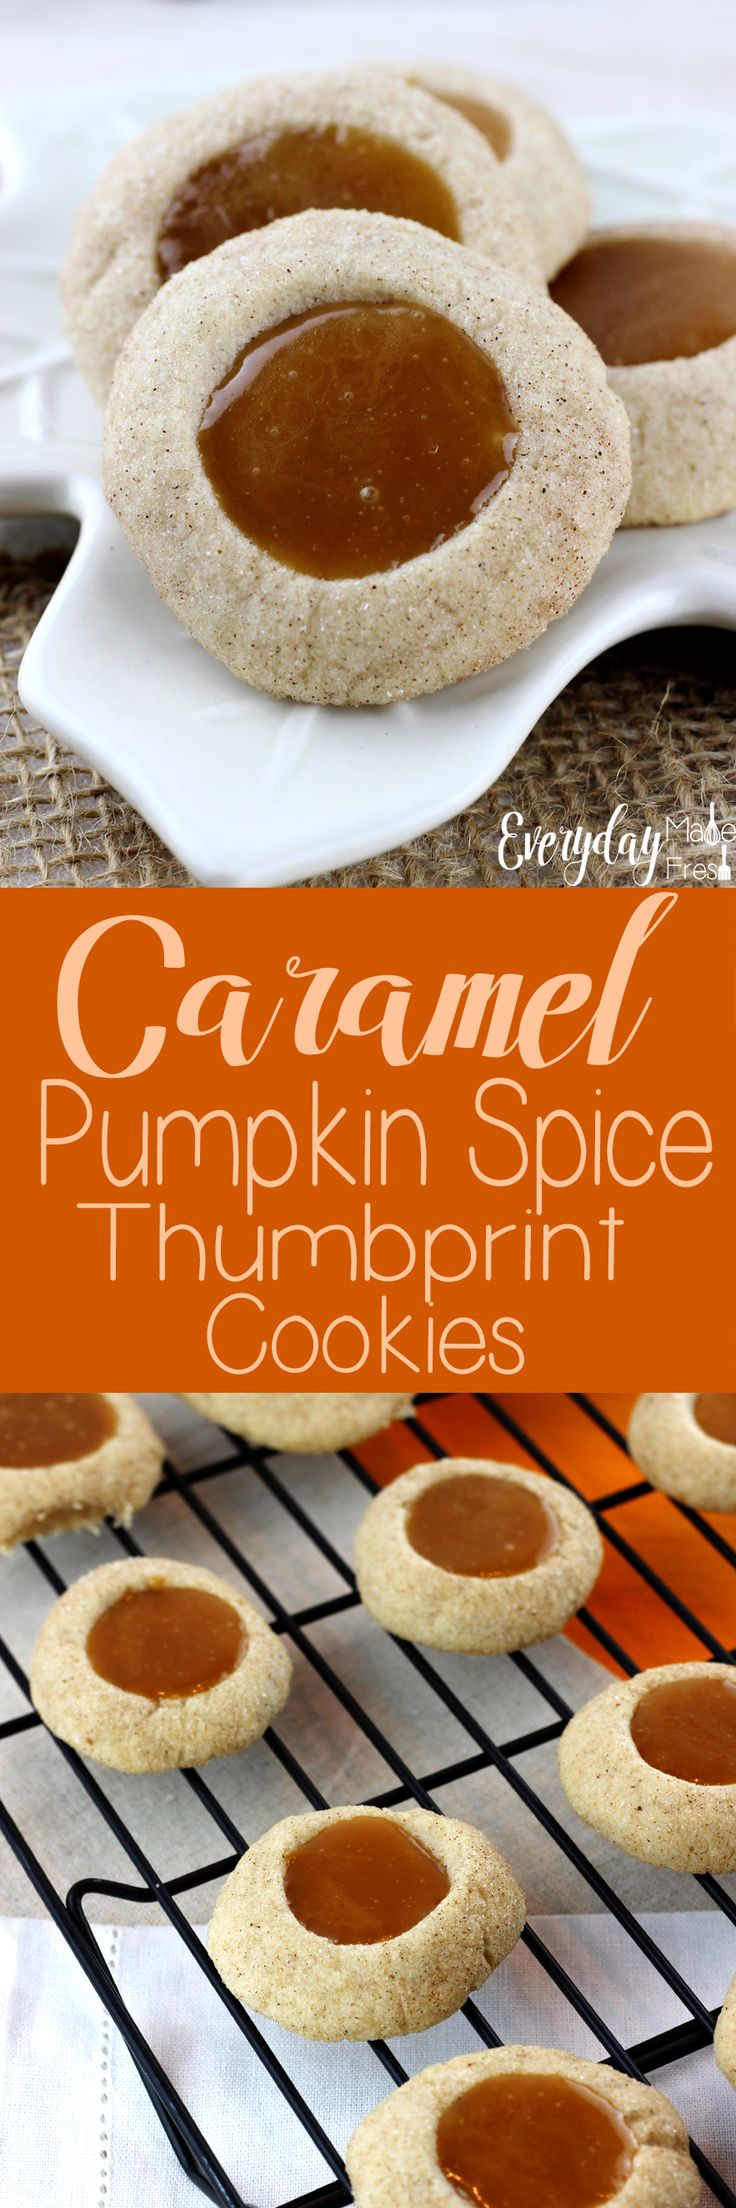 These Caramel Pumpkin Spice Thumbprint Cookies are simple to make and perfect for pumpkin spice lovers! What makes these even better is the simple homemade caramel centers! | EverydayMadeFresh.com http://www.everydaymadefresh.com/caramel-pumpkin-spice-thumbprint-cookies/